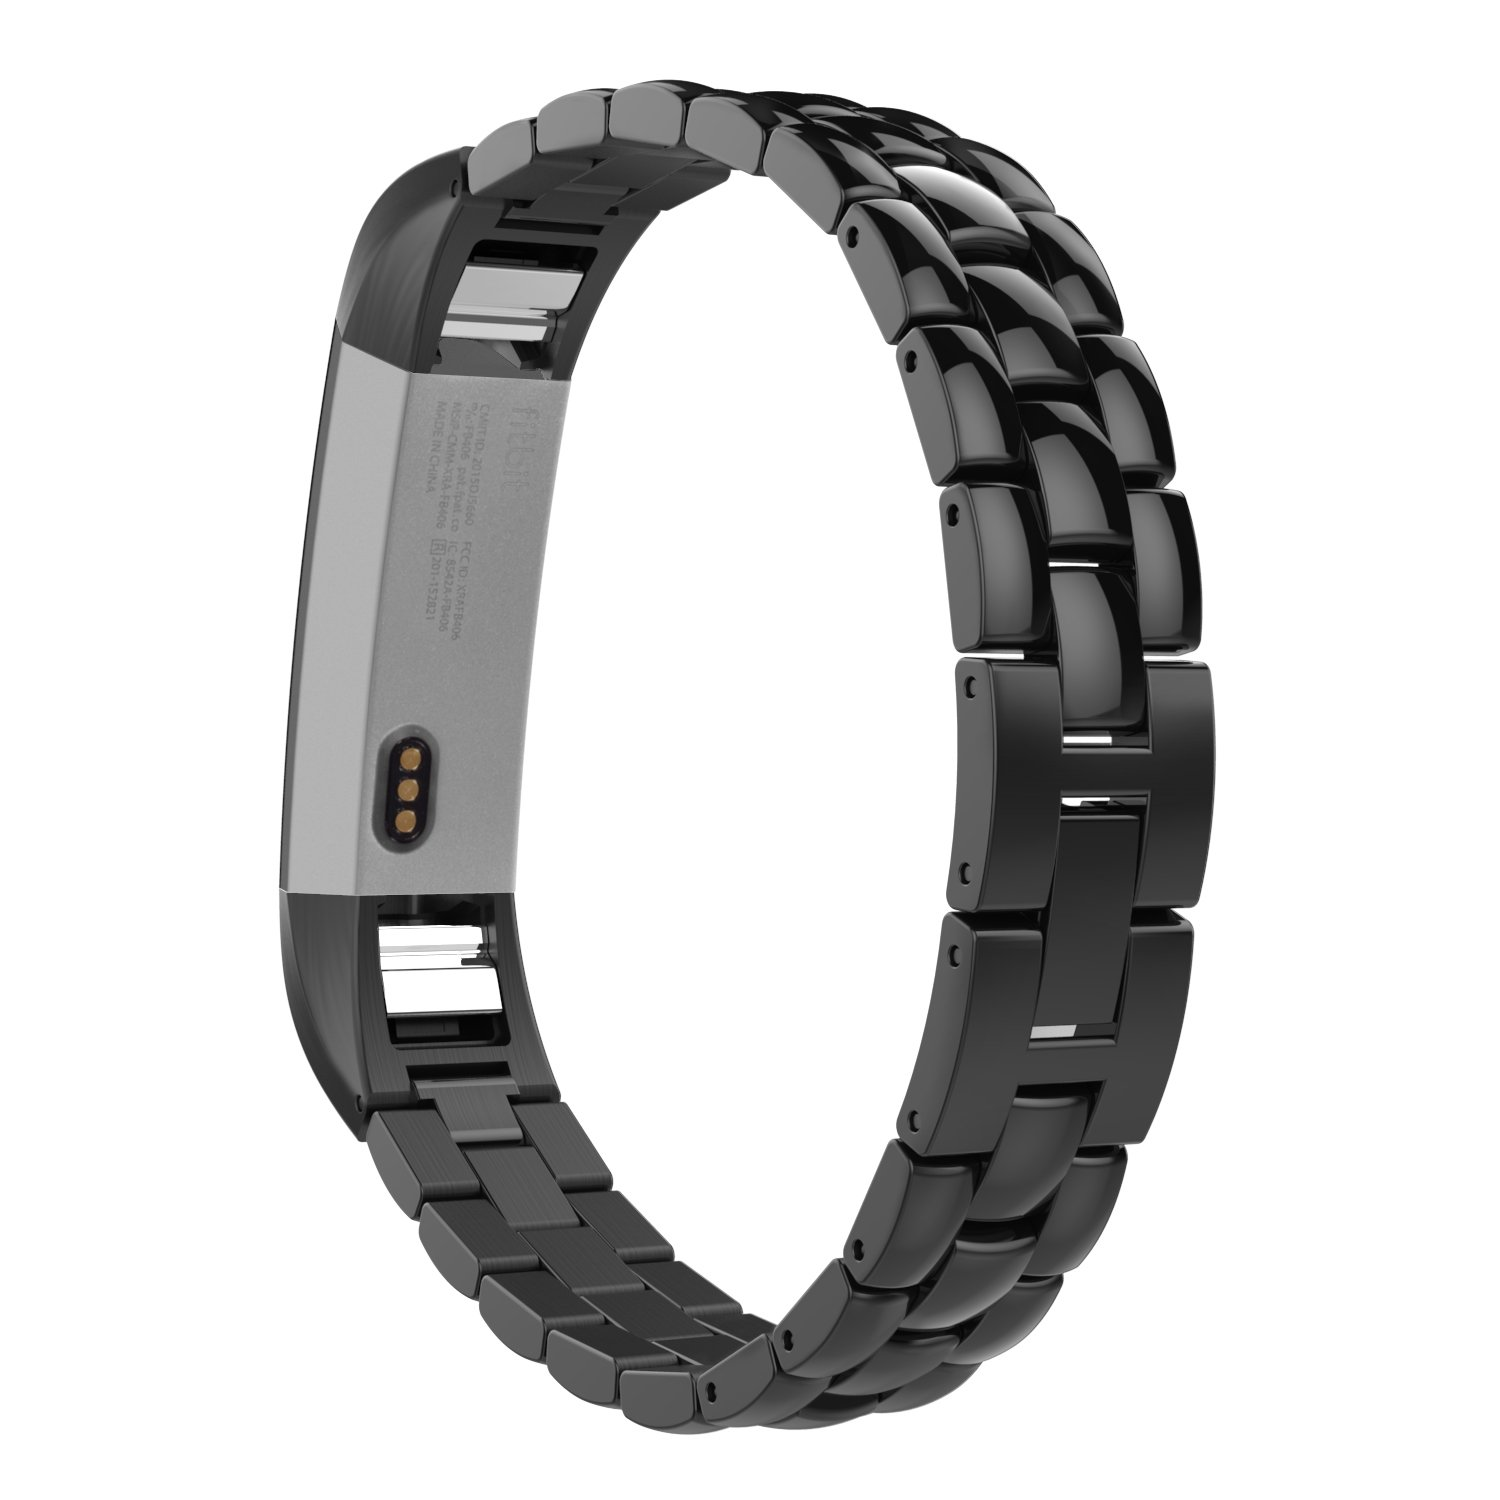 MoKo Fitbit Alta HR and Alta Band, Universal Stainless Steel Replacement Watch Bracelet Band Strap with Fold Over Clasp for Fitbit Alta/Fitbit Alta HR, Tracker NOT Included - Black by MoKo